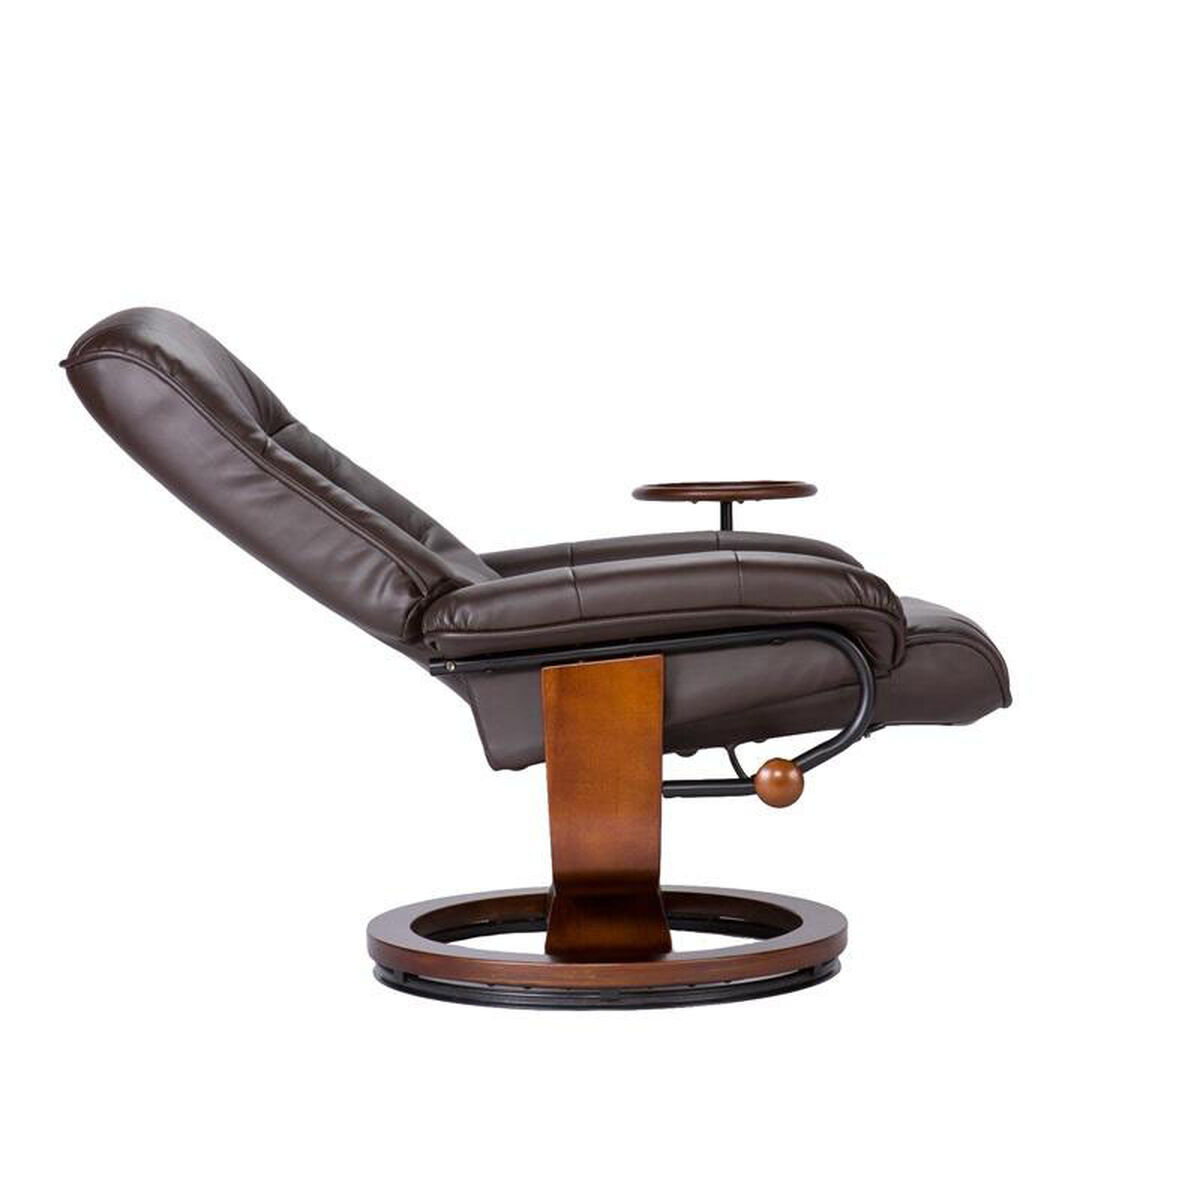 Our bonded leather swivel recliner with attached side table and ottoman cafe brown is on